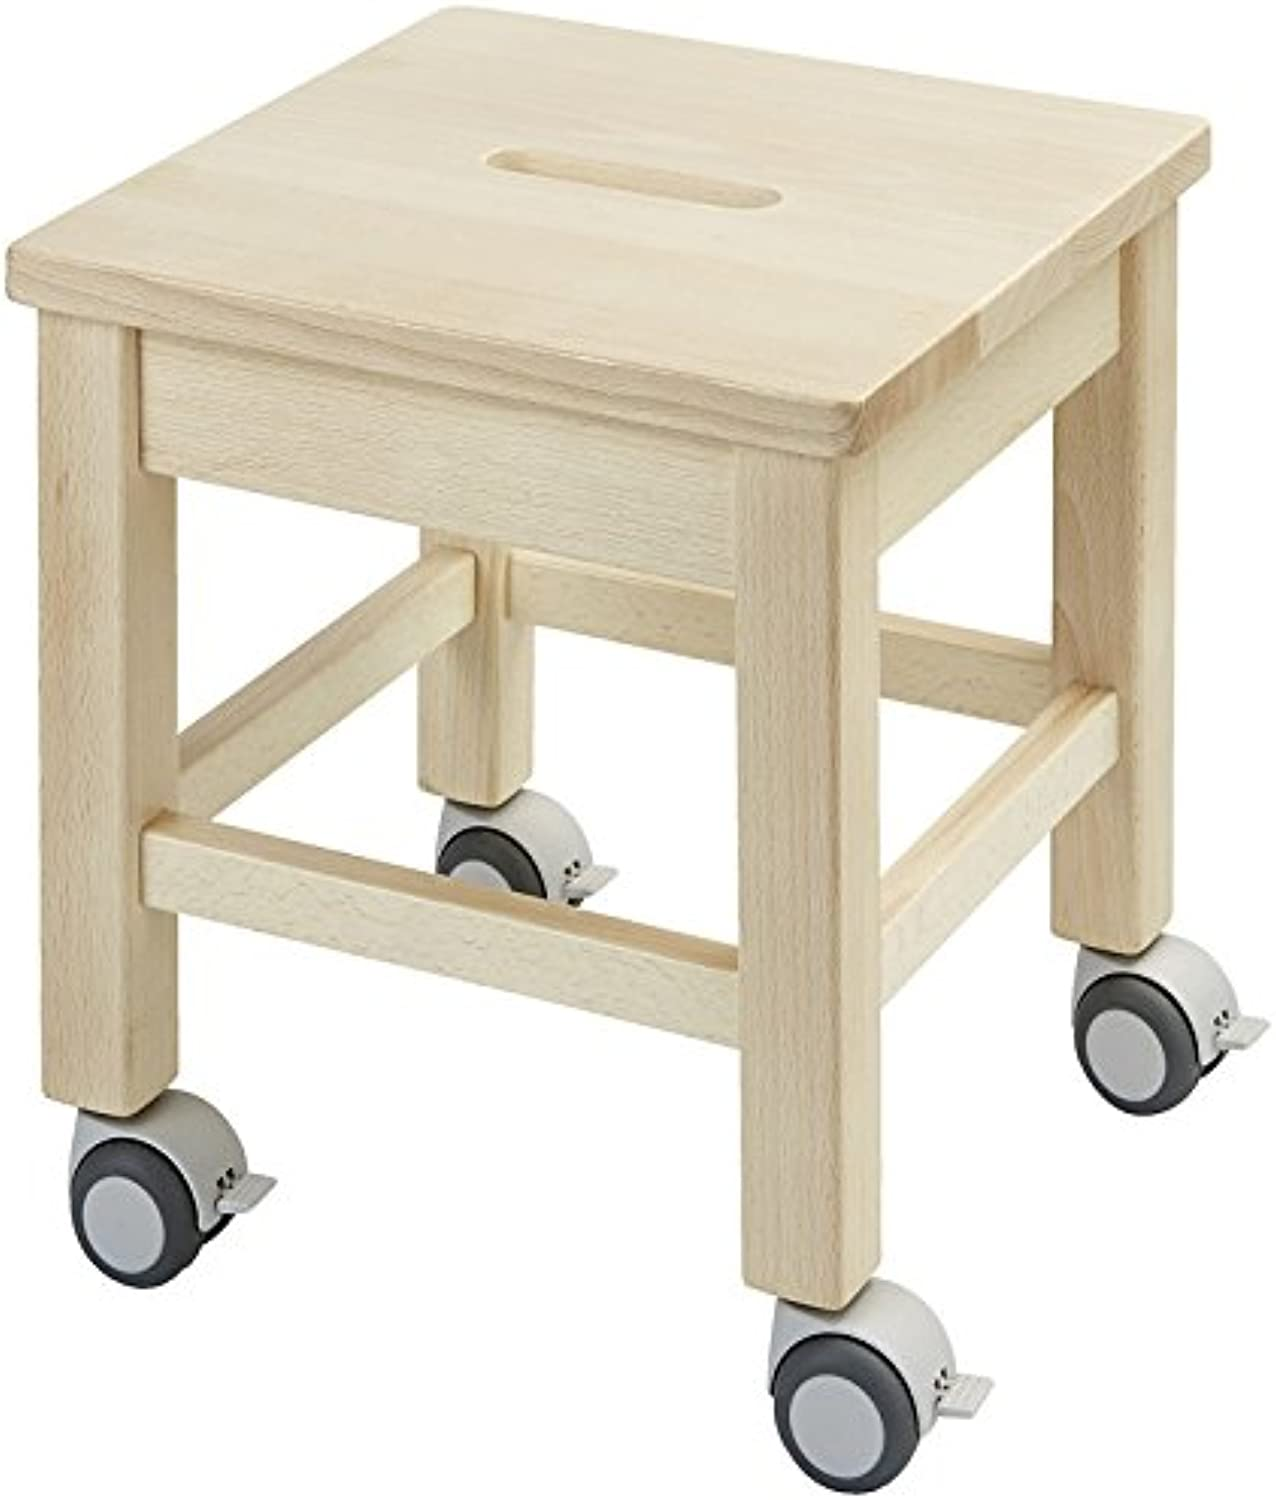 Nathan 371174 Rolling Stool, Multi color